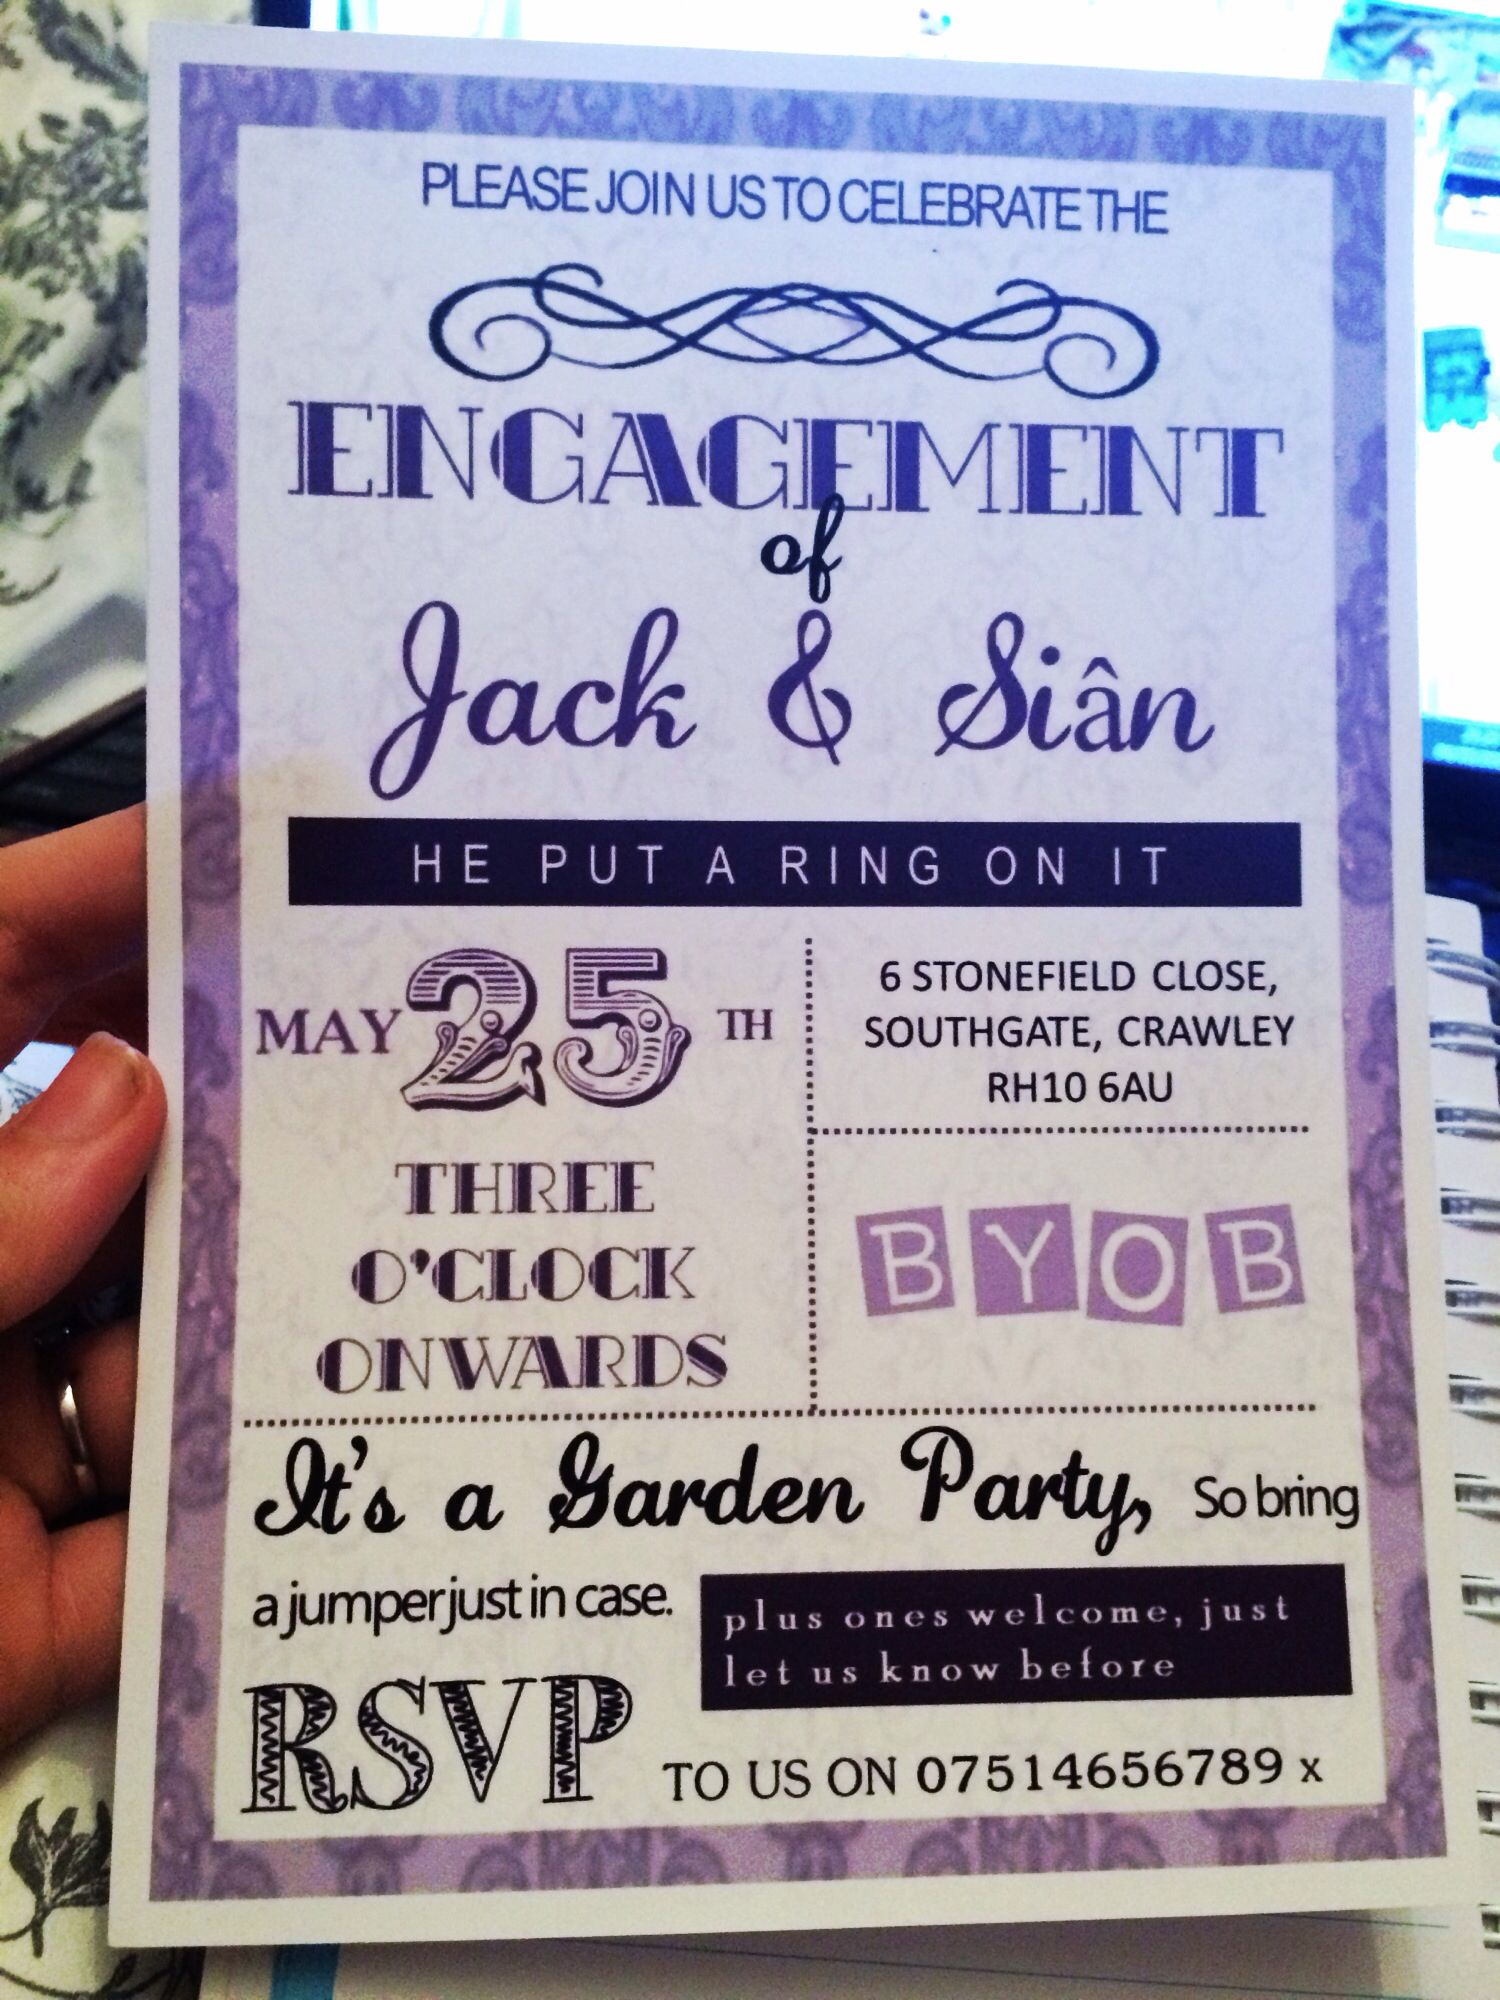 Vintage engagement party invites. Handmade. | Engagement party ...